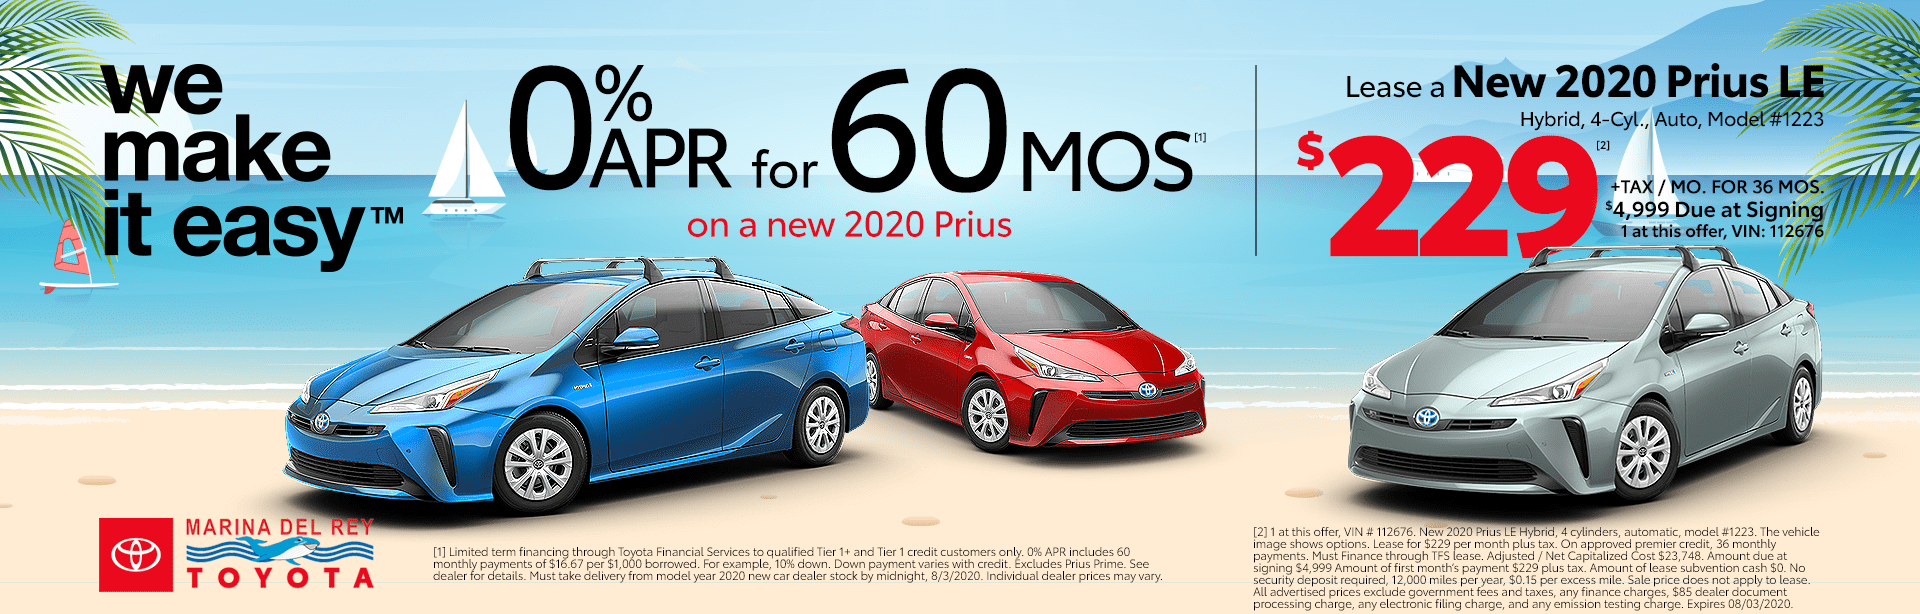 Prius Deals Toyota Prius Lease Deals Toyota Prius Purchase Offers Los Angeles County Marina Del Rey Toyota